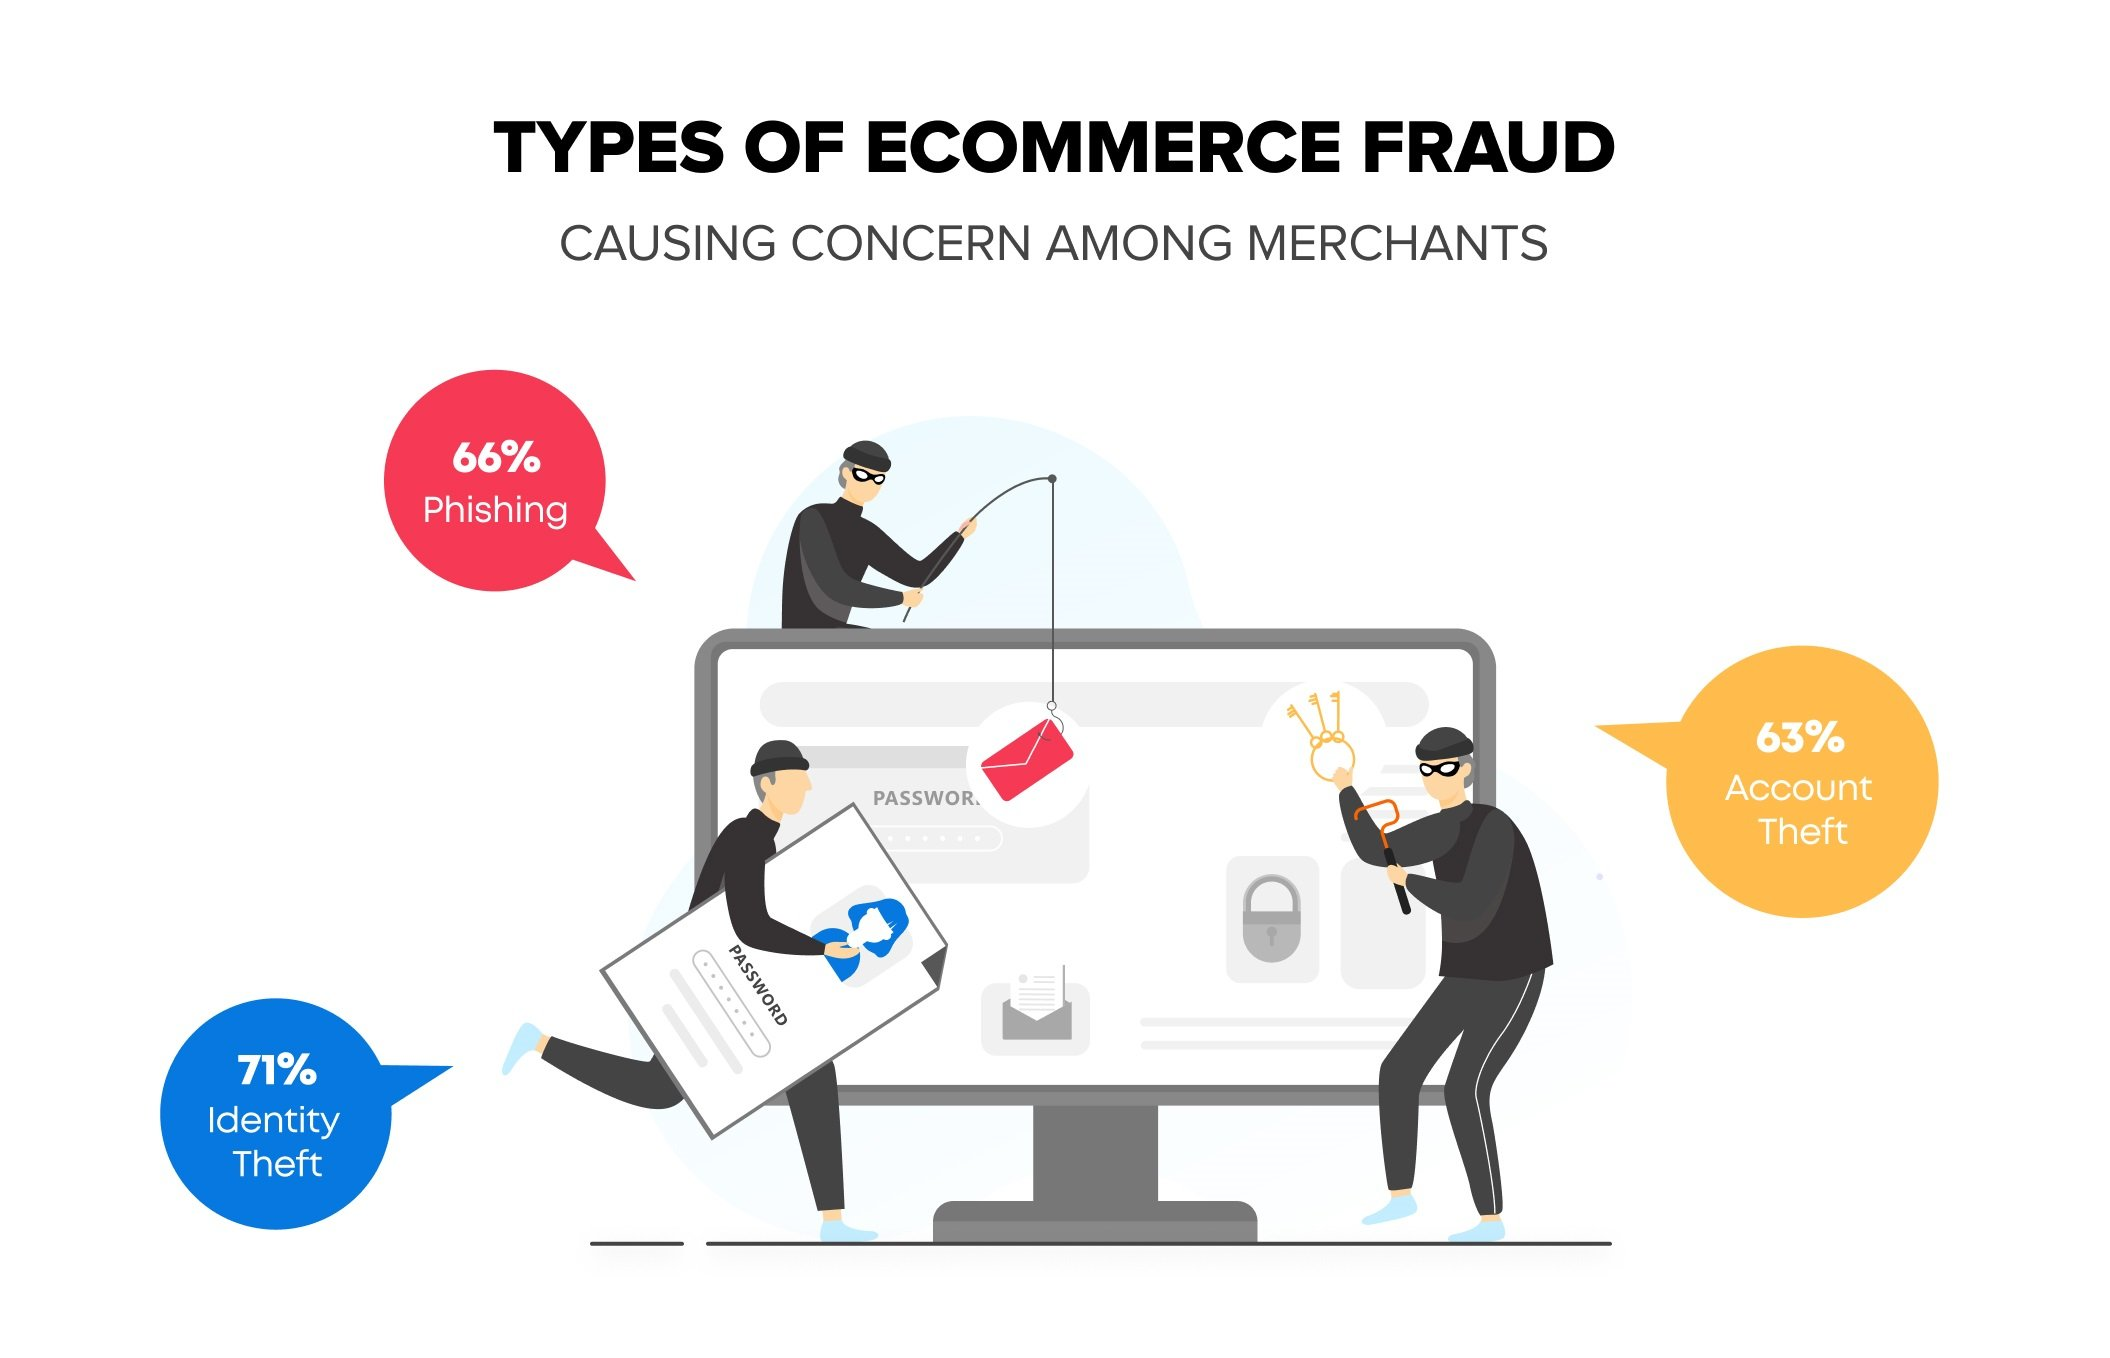 Types of eCommerce Frauds